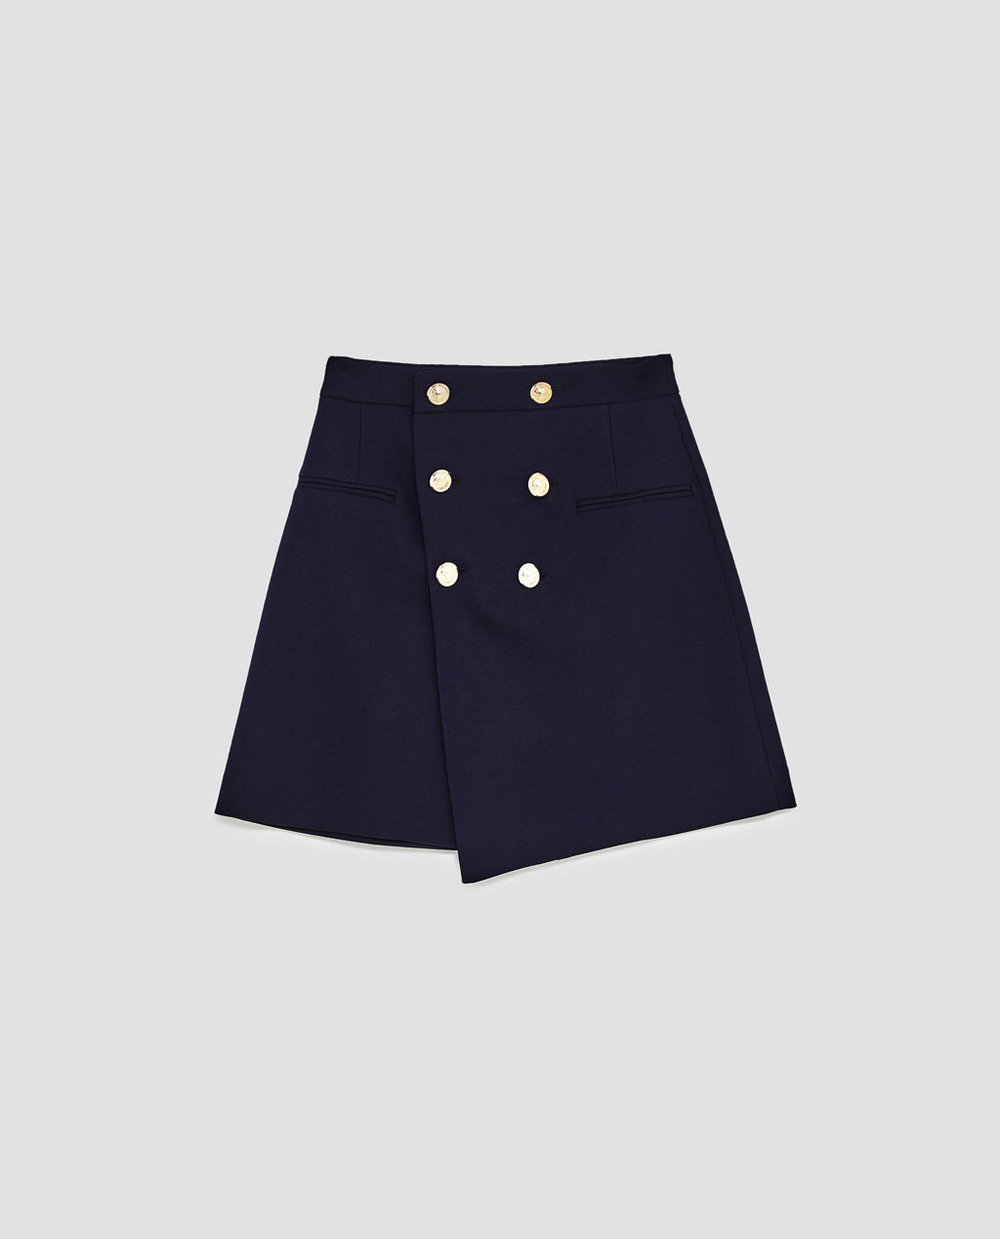 Skirt With Gold Buttons